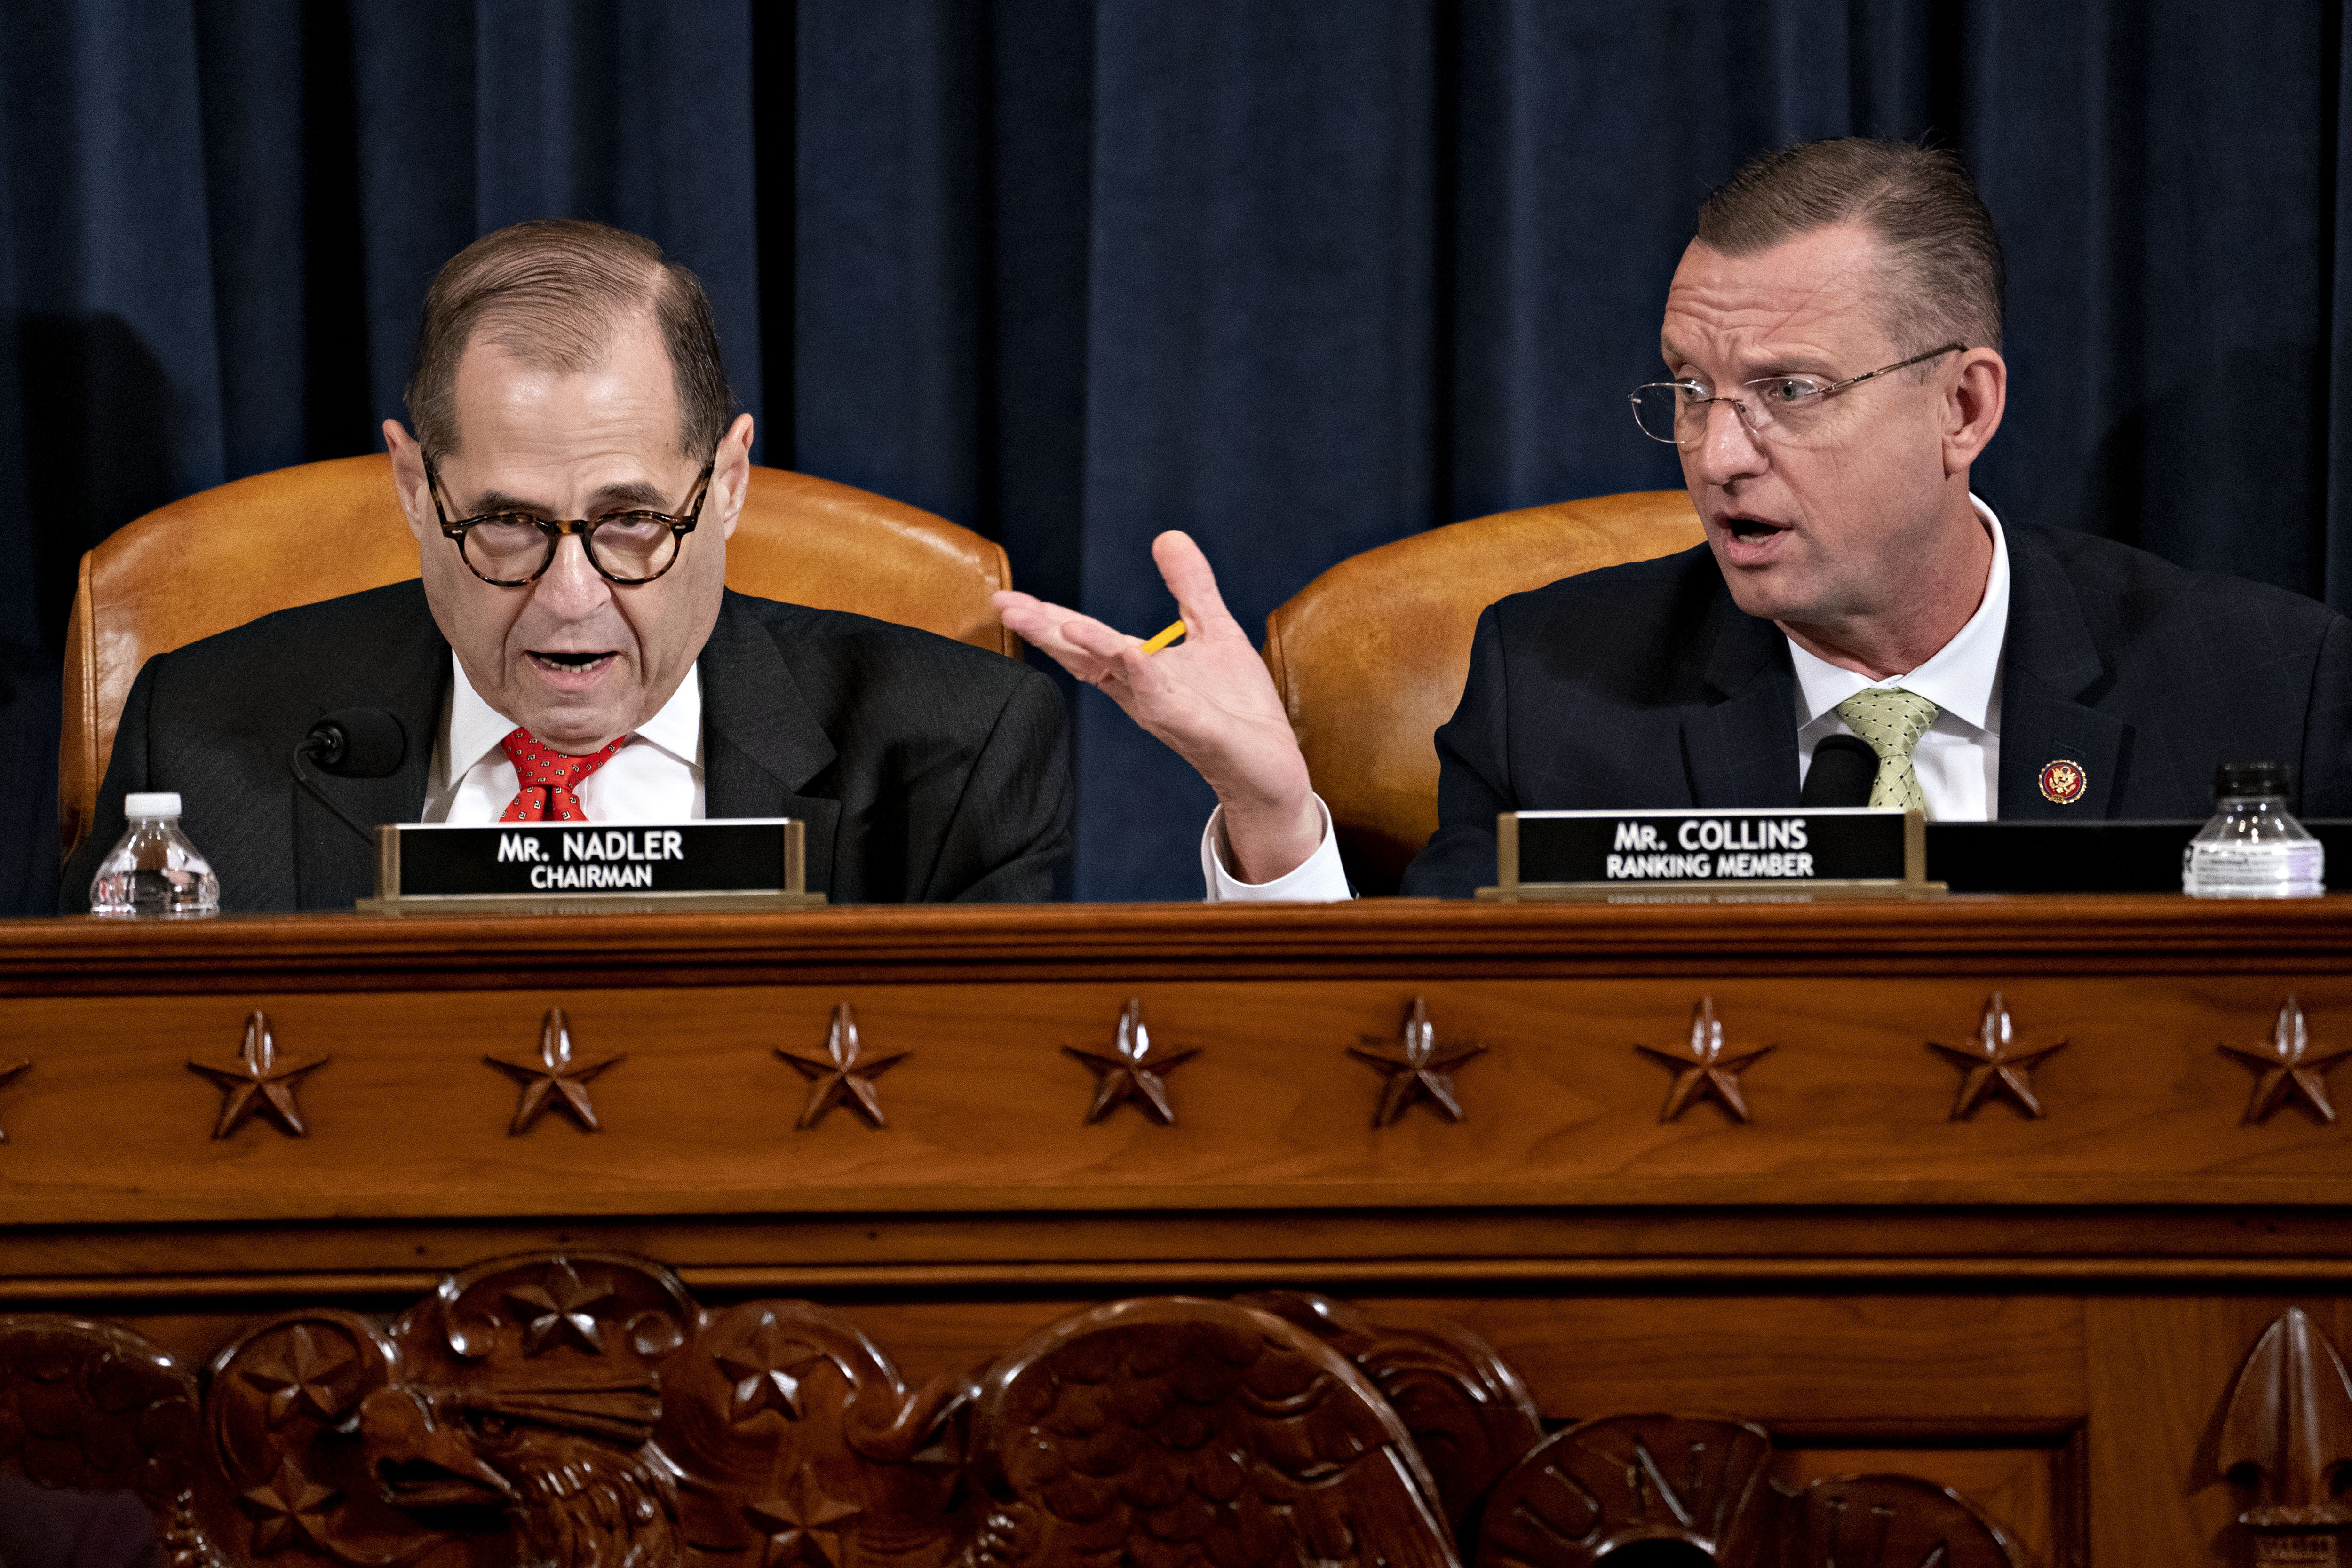 House Judiciary Committee Chairman Rep. Jerrold Nadler, D-N.Y., left, and ranking member Rep. Doug Collins, R-Ga., right, both speaking during a House Judiciary Committee meeting.